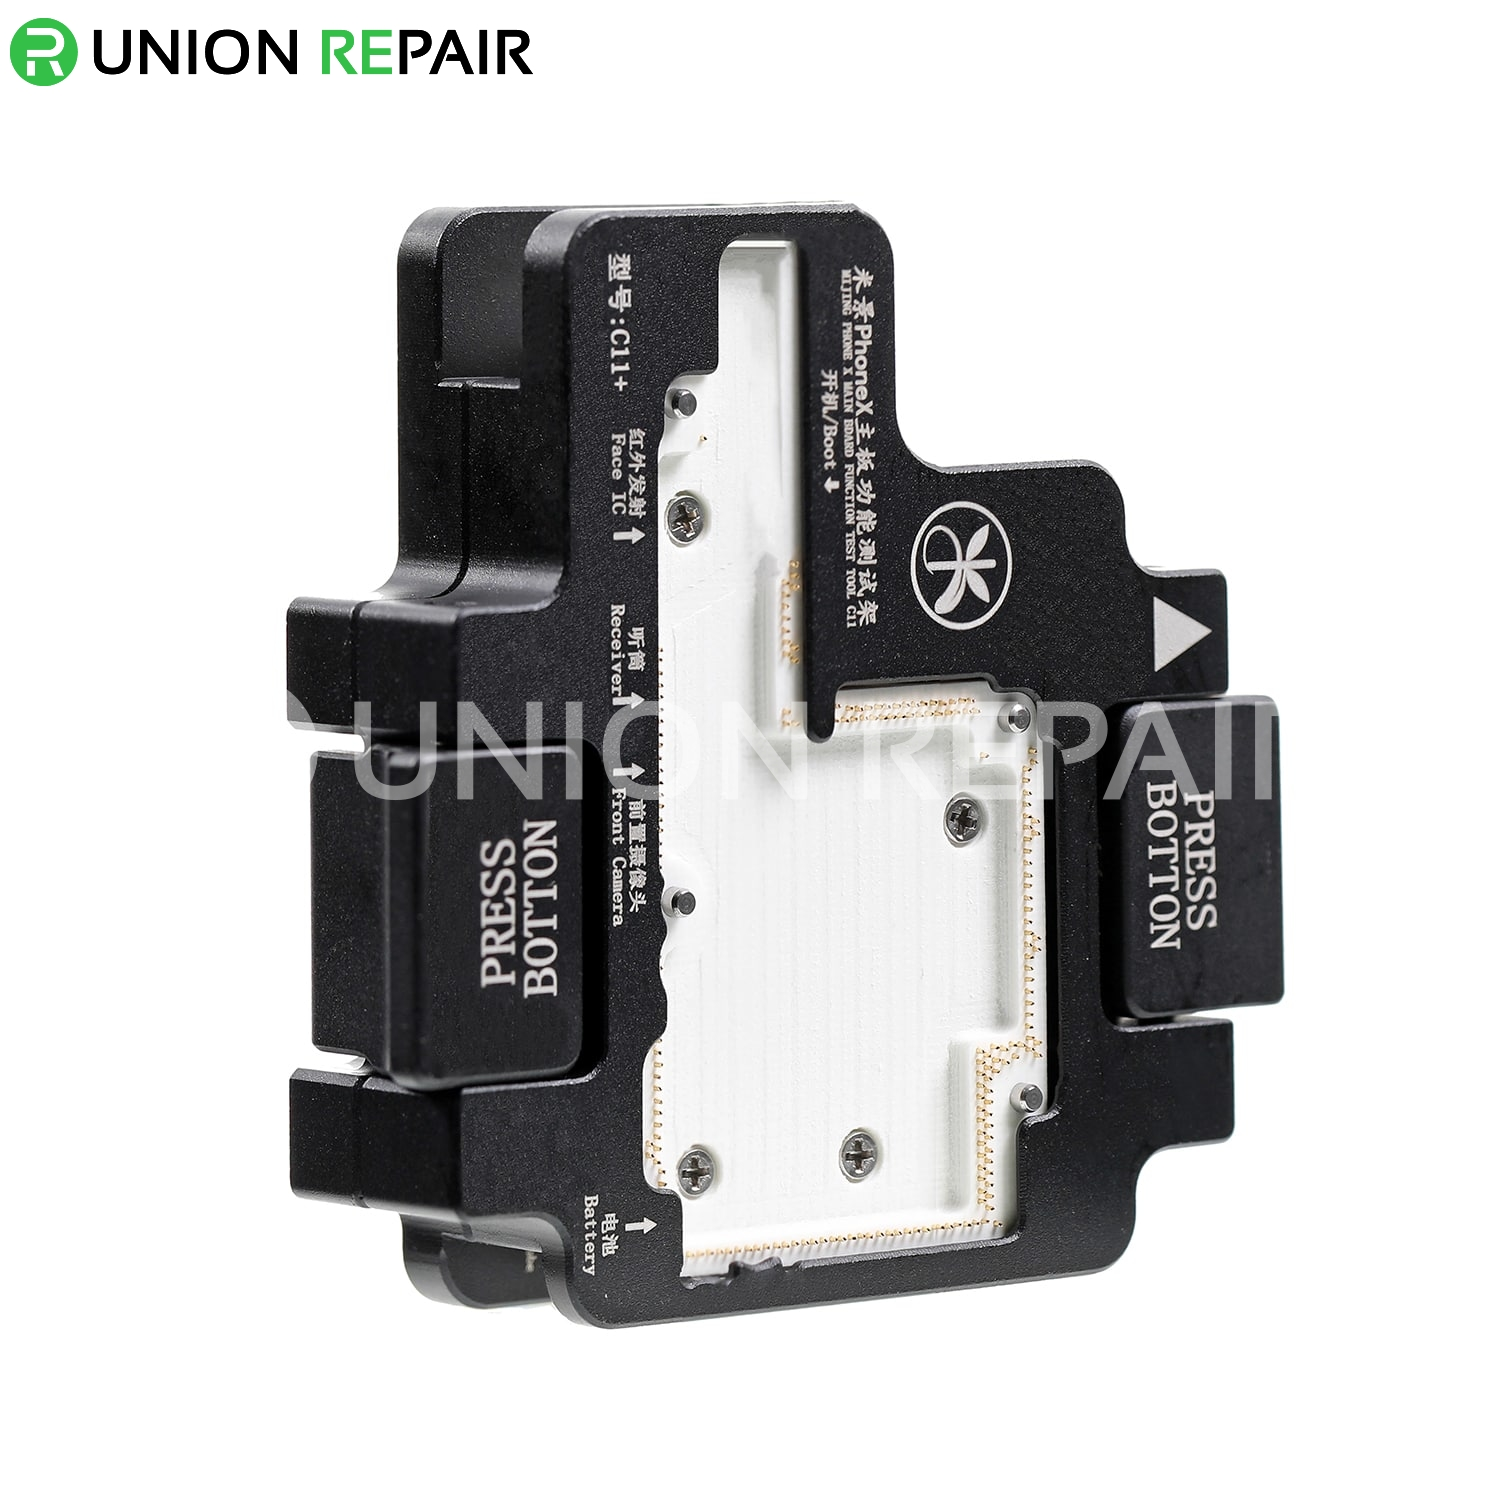 MiJing C11+ Upgrade Main Board Function Testing Fixture for iPhone X